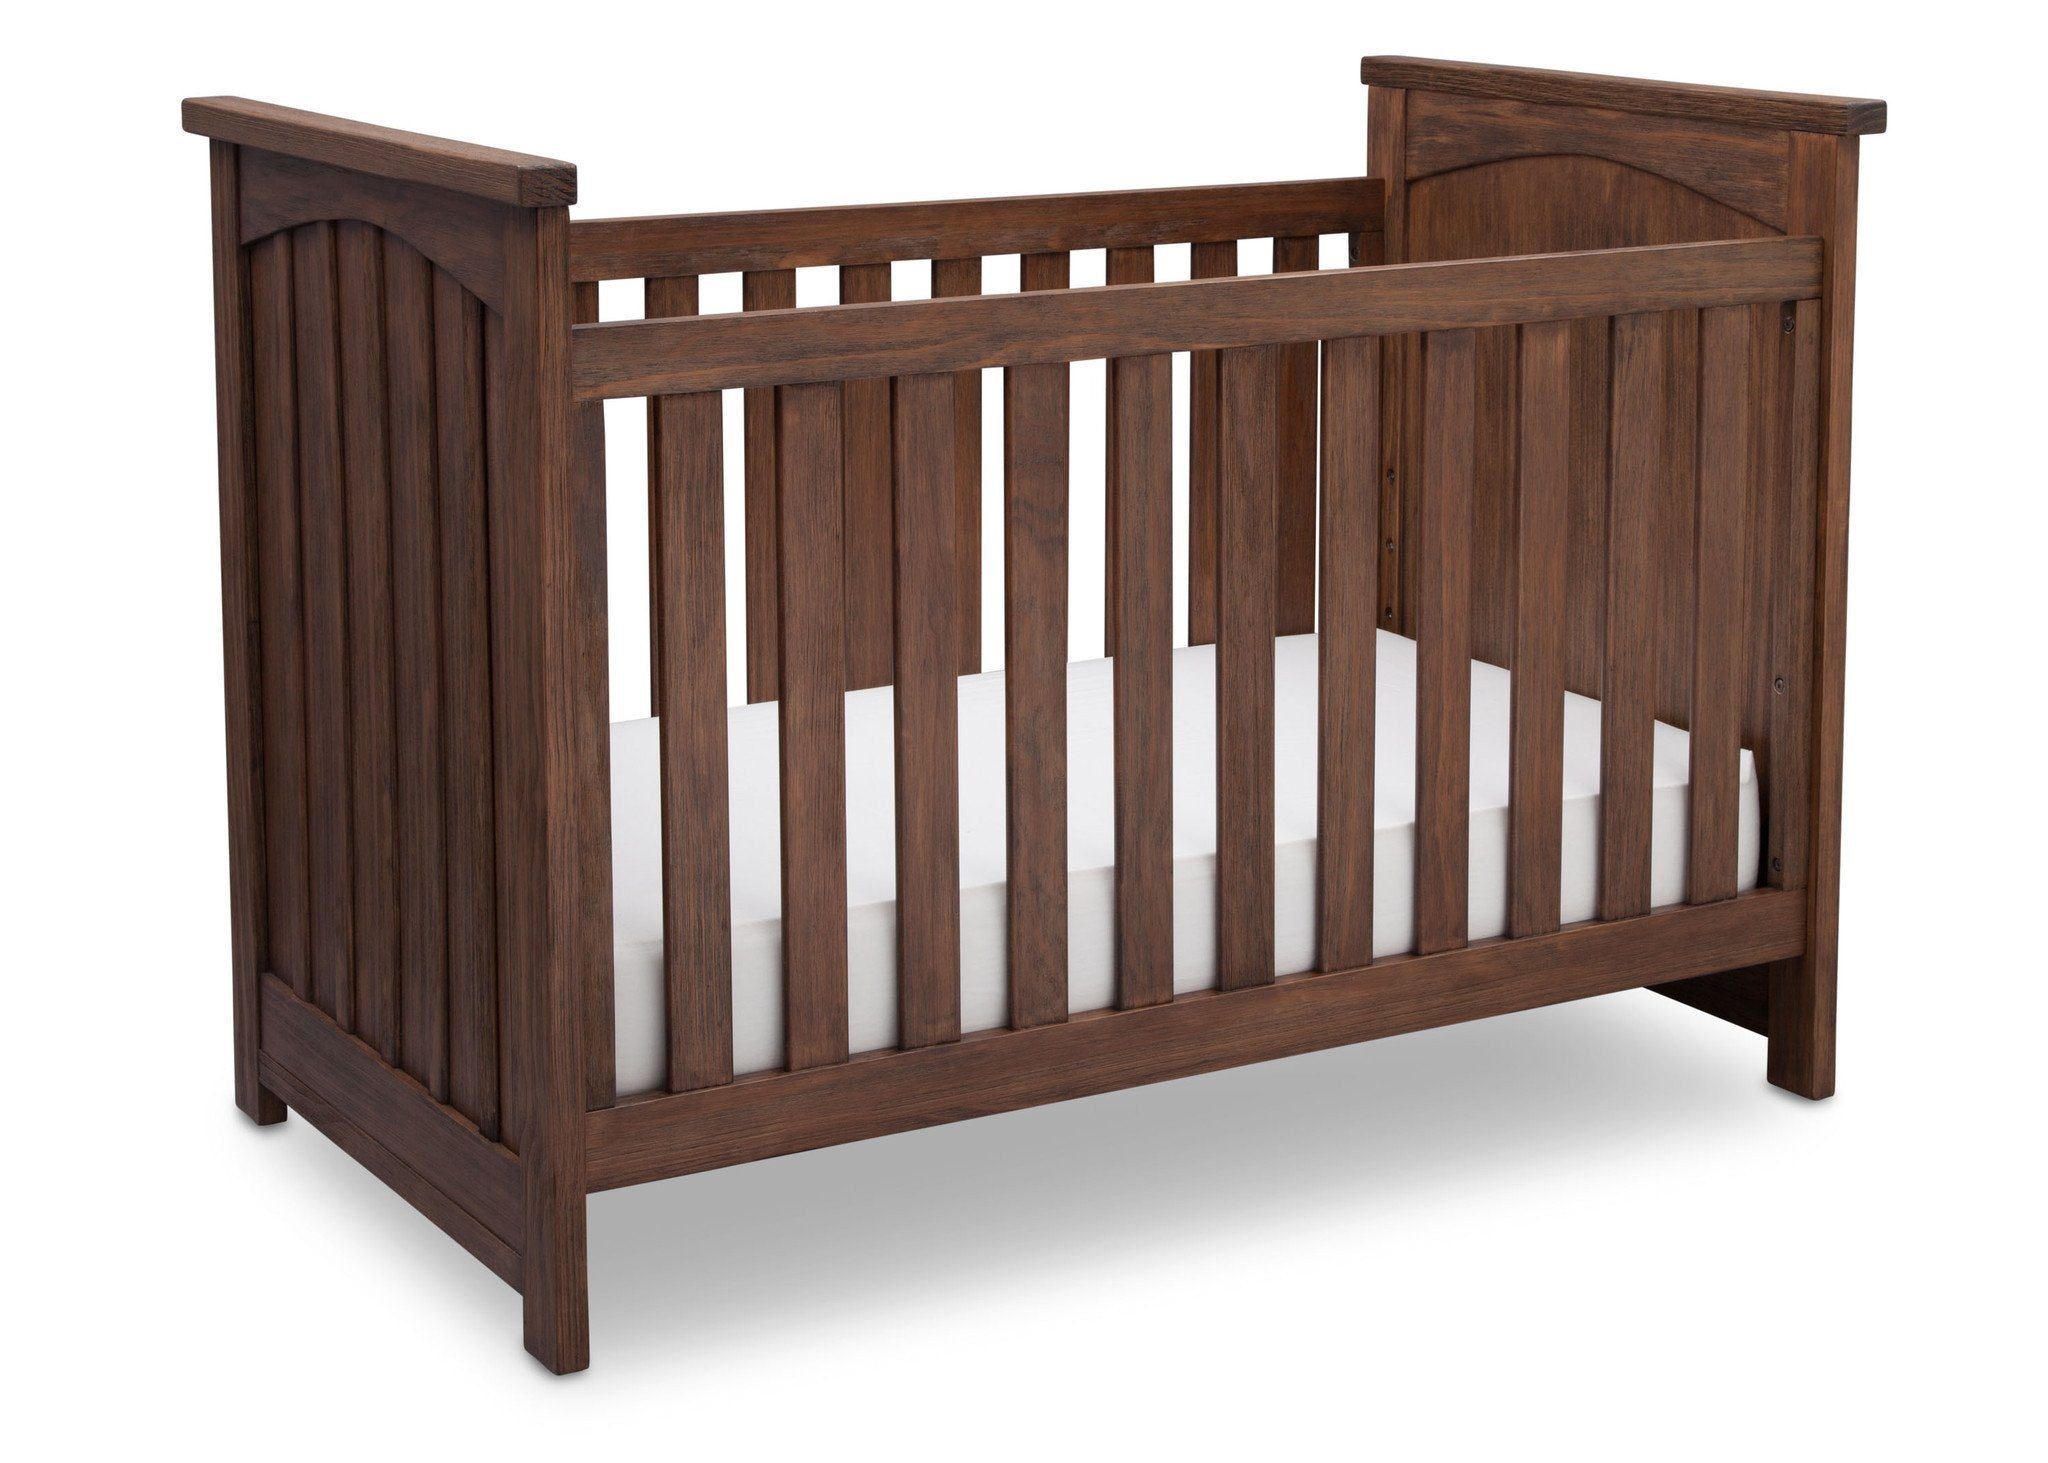 oak premium furniture modern crib guides cheap wood cribs solid baby cot find get convertible nursery toddler storkcraft shopping quotations in